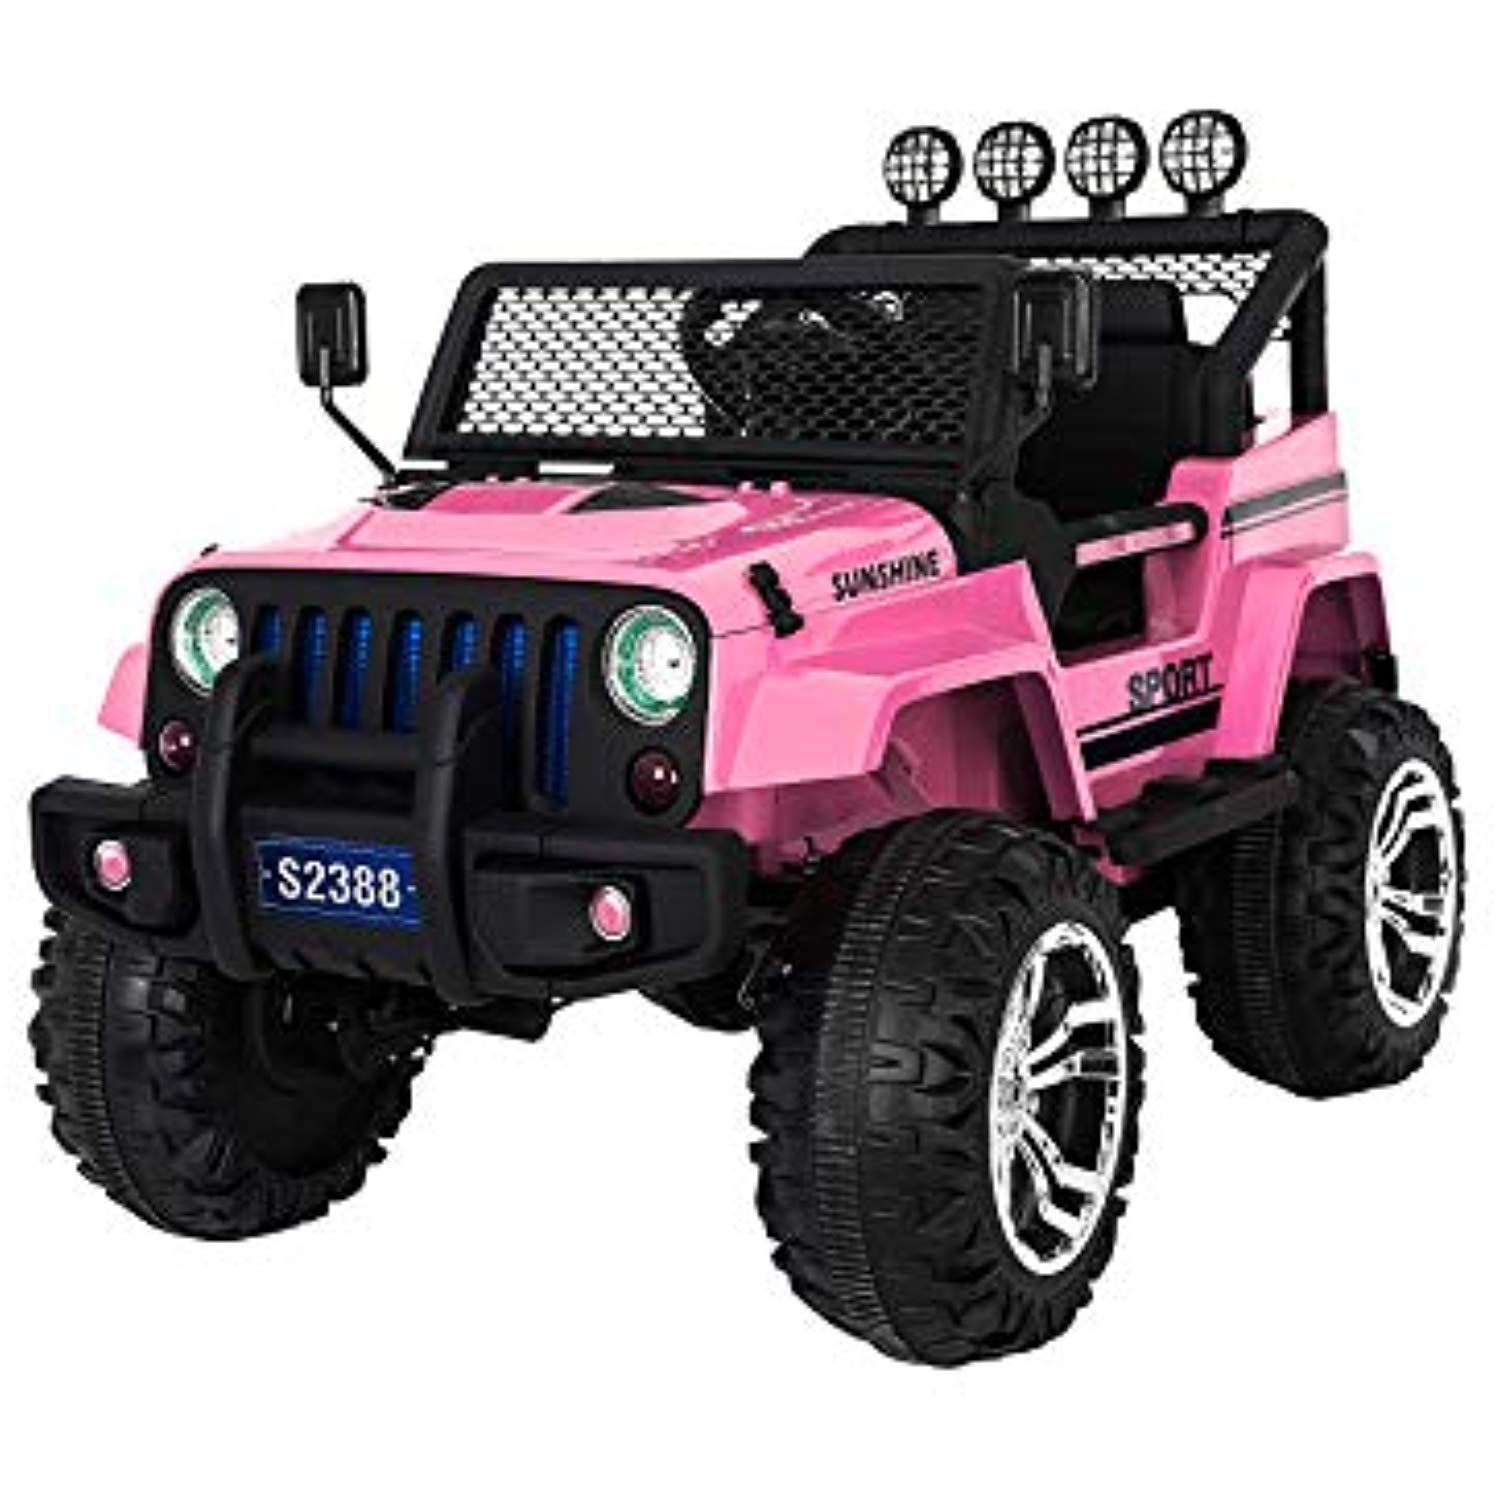 Jeep Style Ride on Car for Kids, RC Remote Control